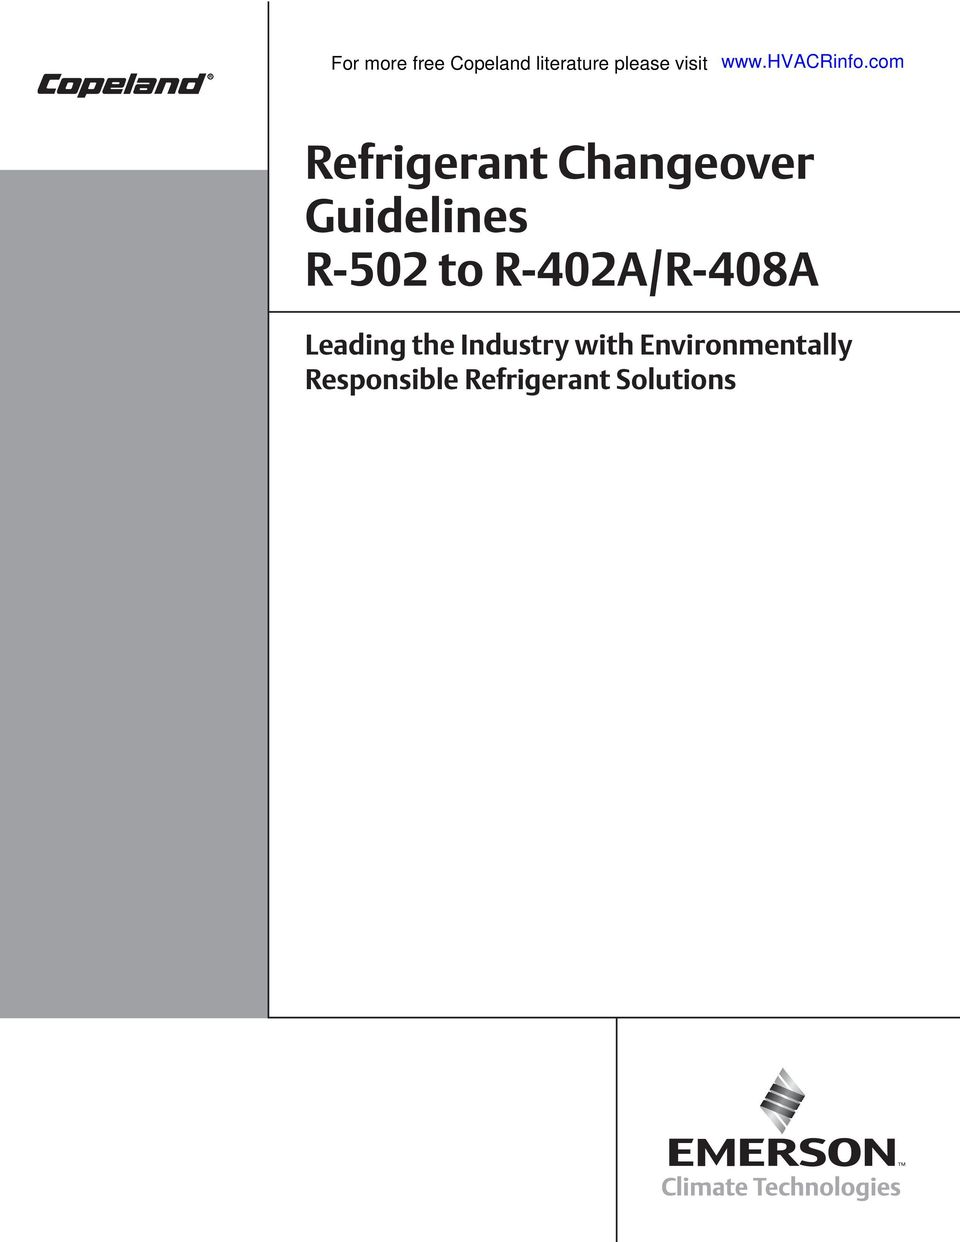 Refrigerant Changeover Guidelines R-502 to R-402A/R-408A